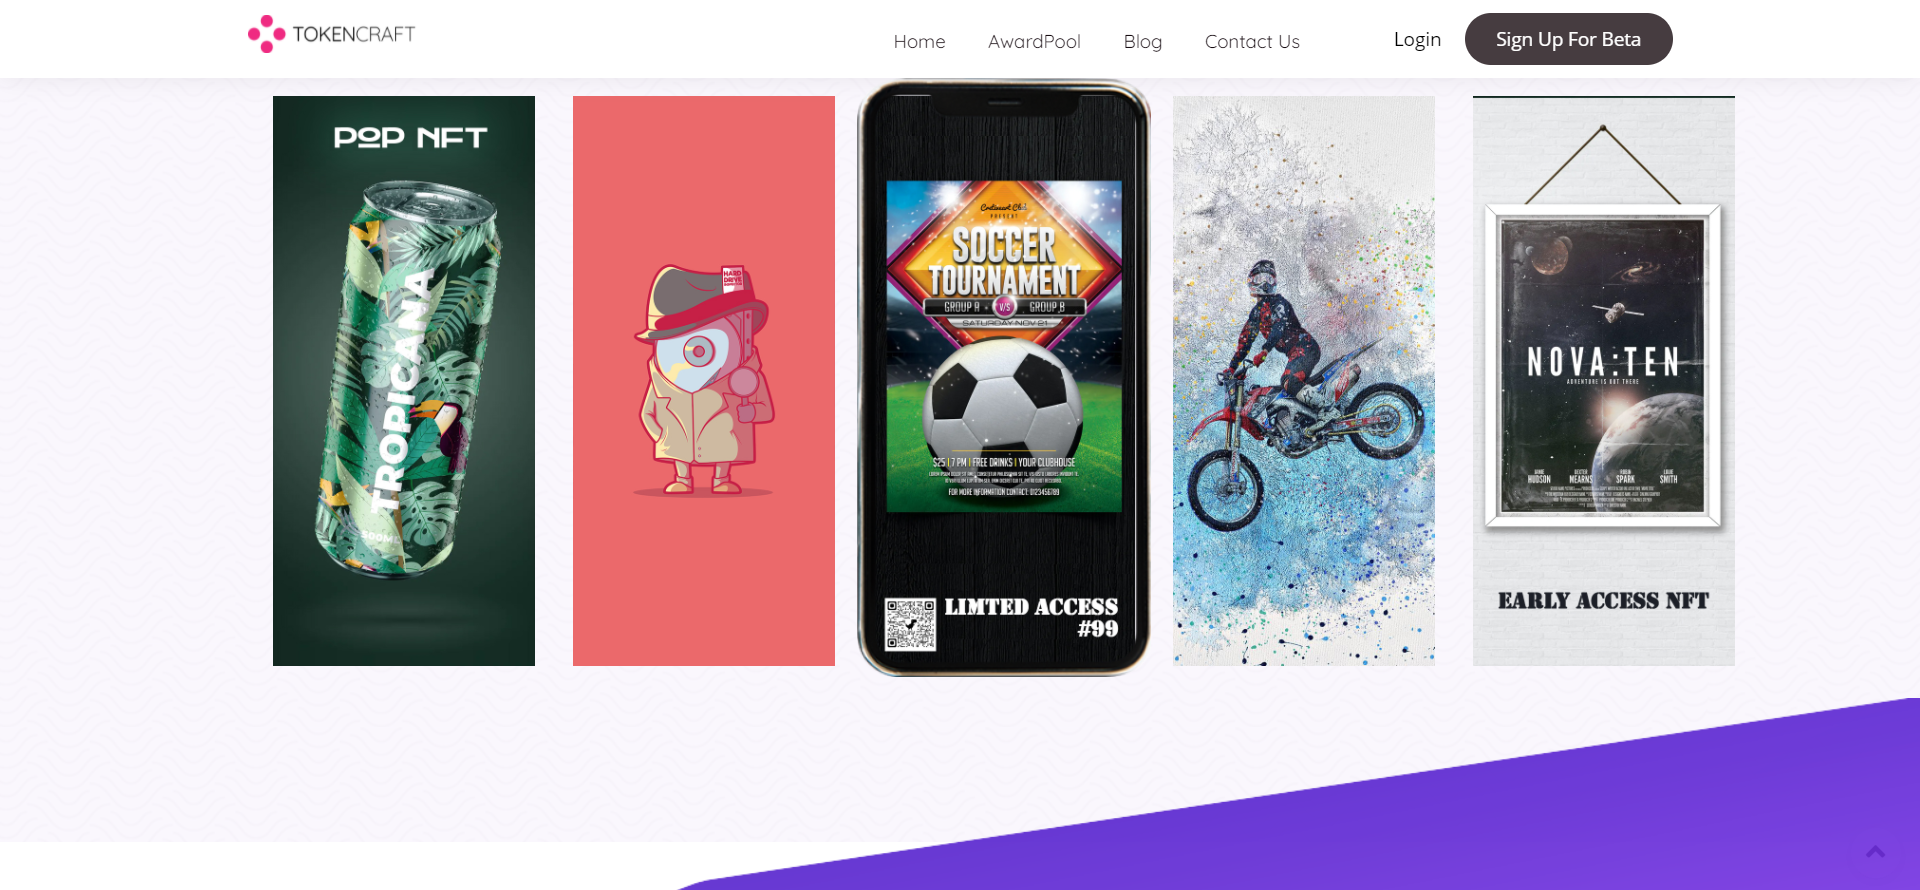 Award Pool Launches Gamified NFT Platform in Partnership with Celo